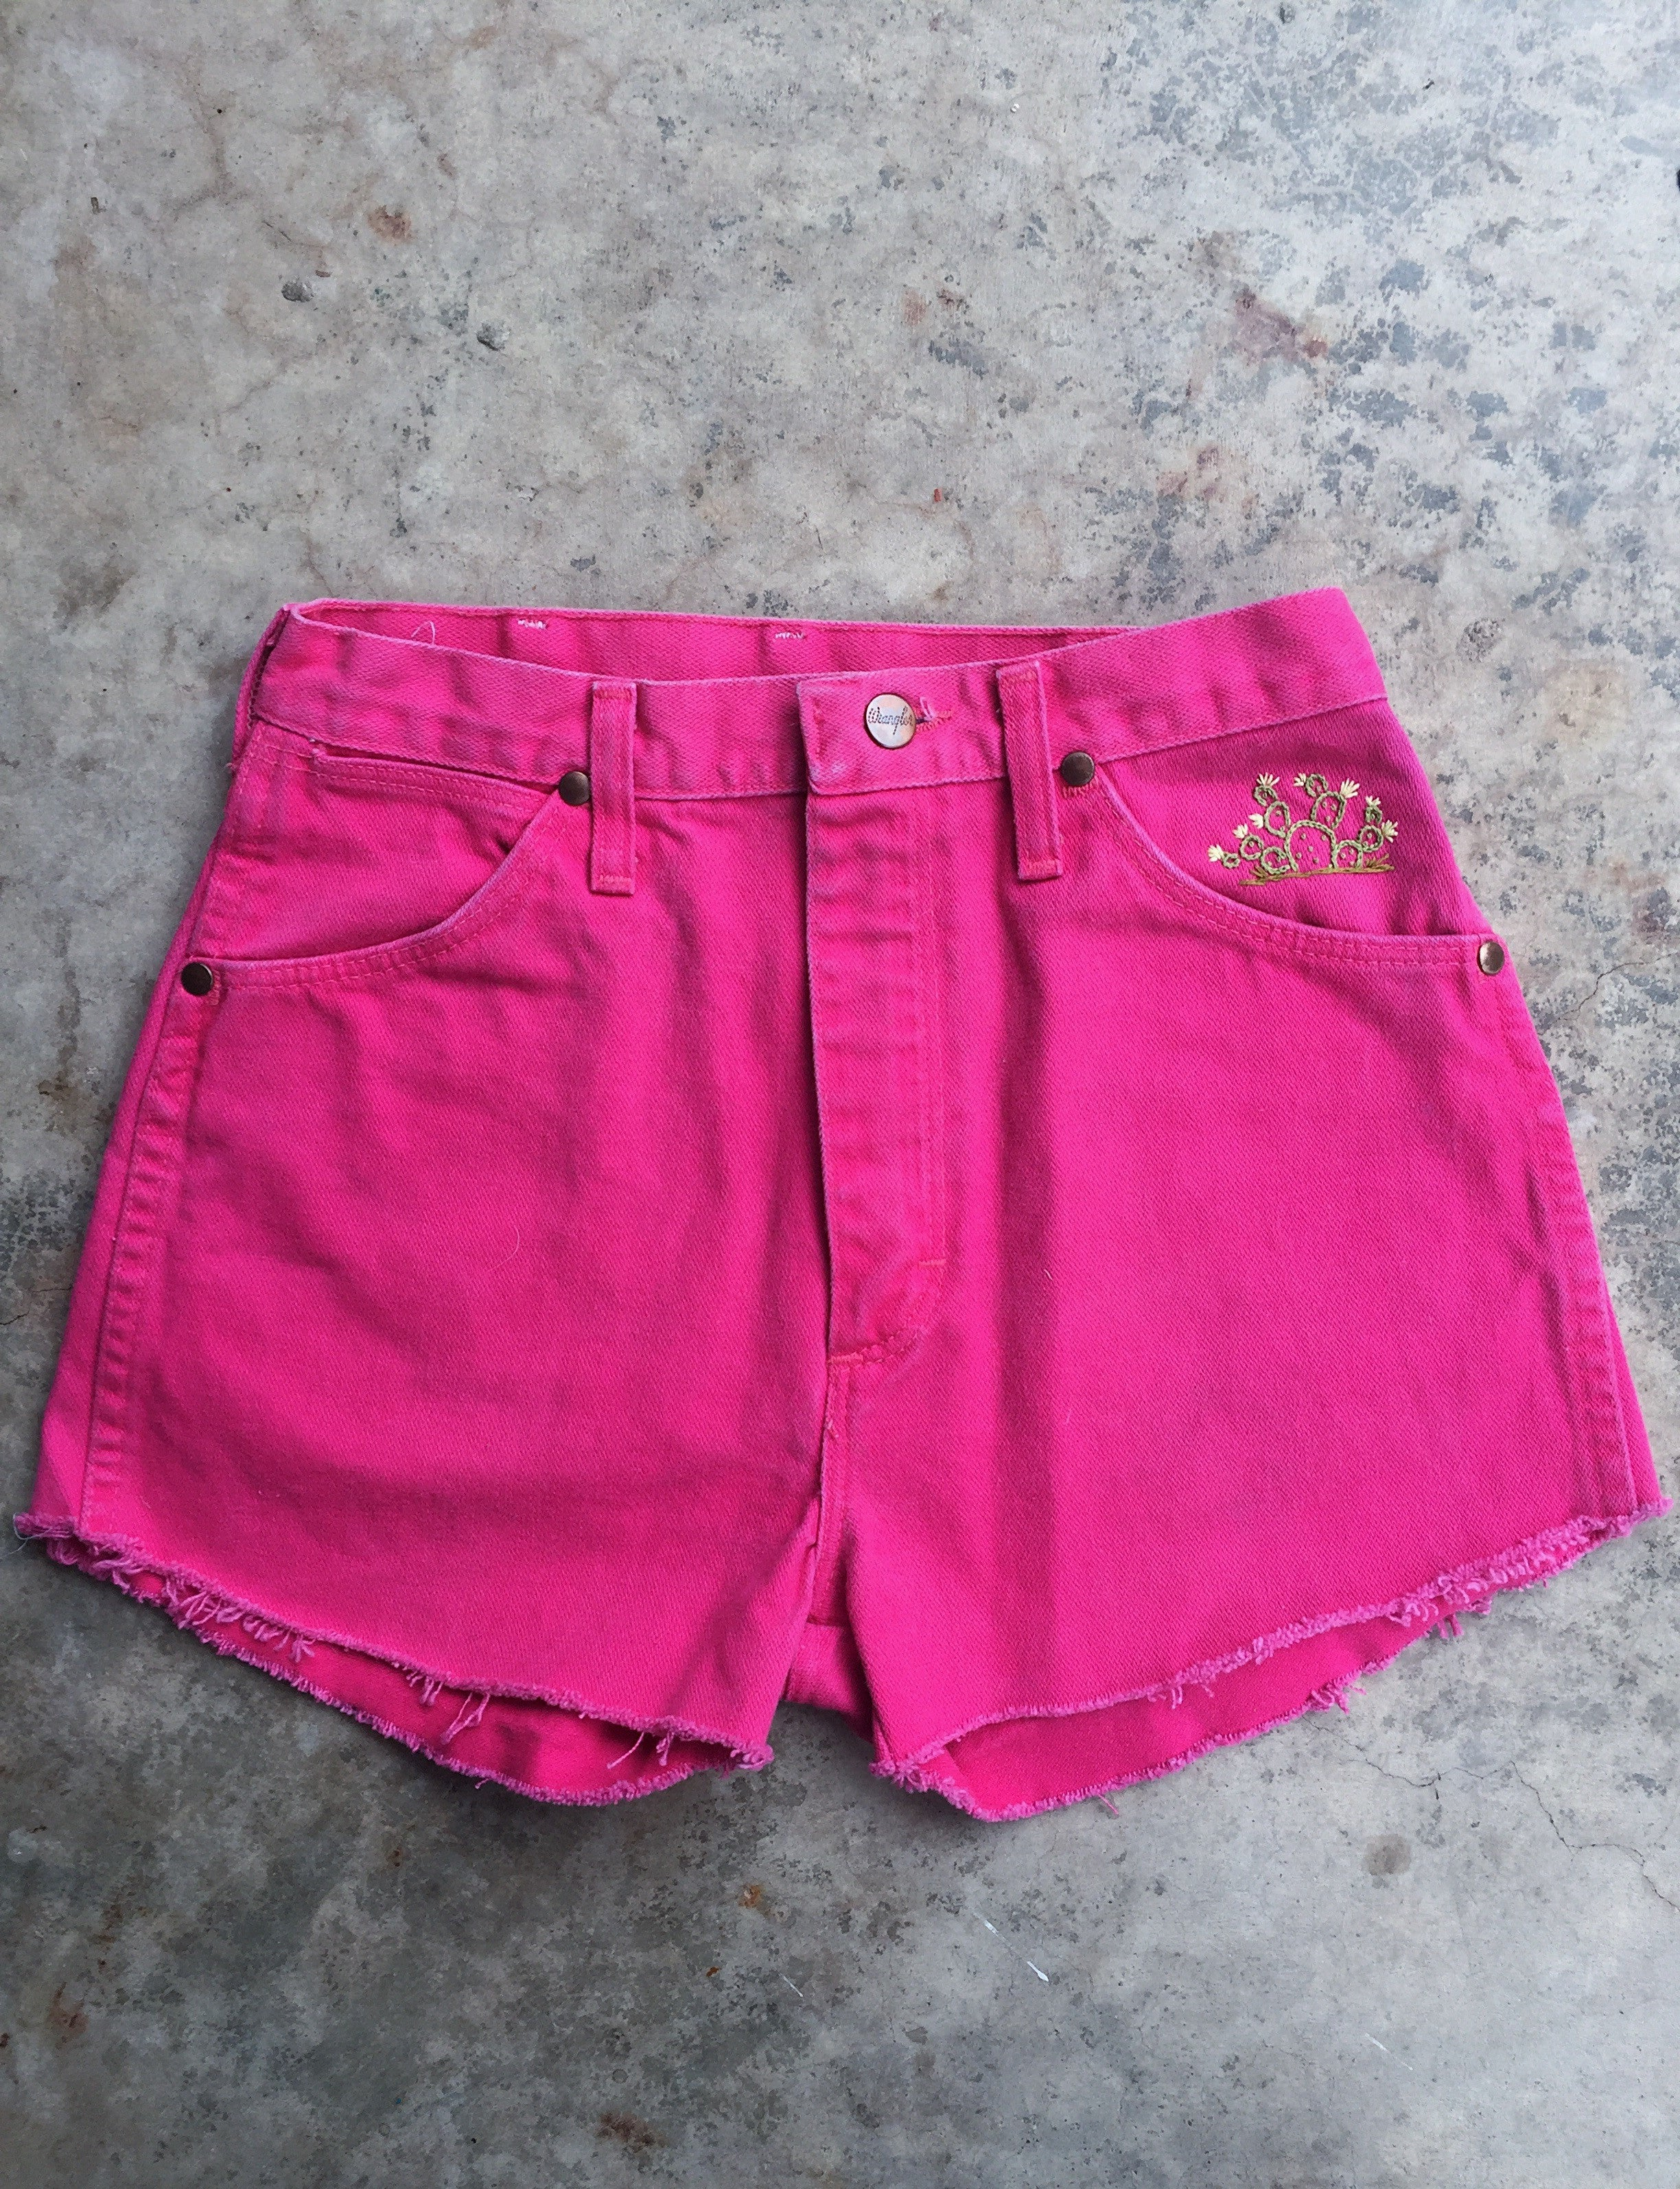 Pink Wrangler with Prickly Pear Cactus Embroidery. Sz 27